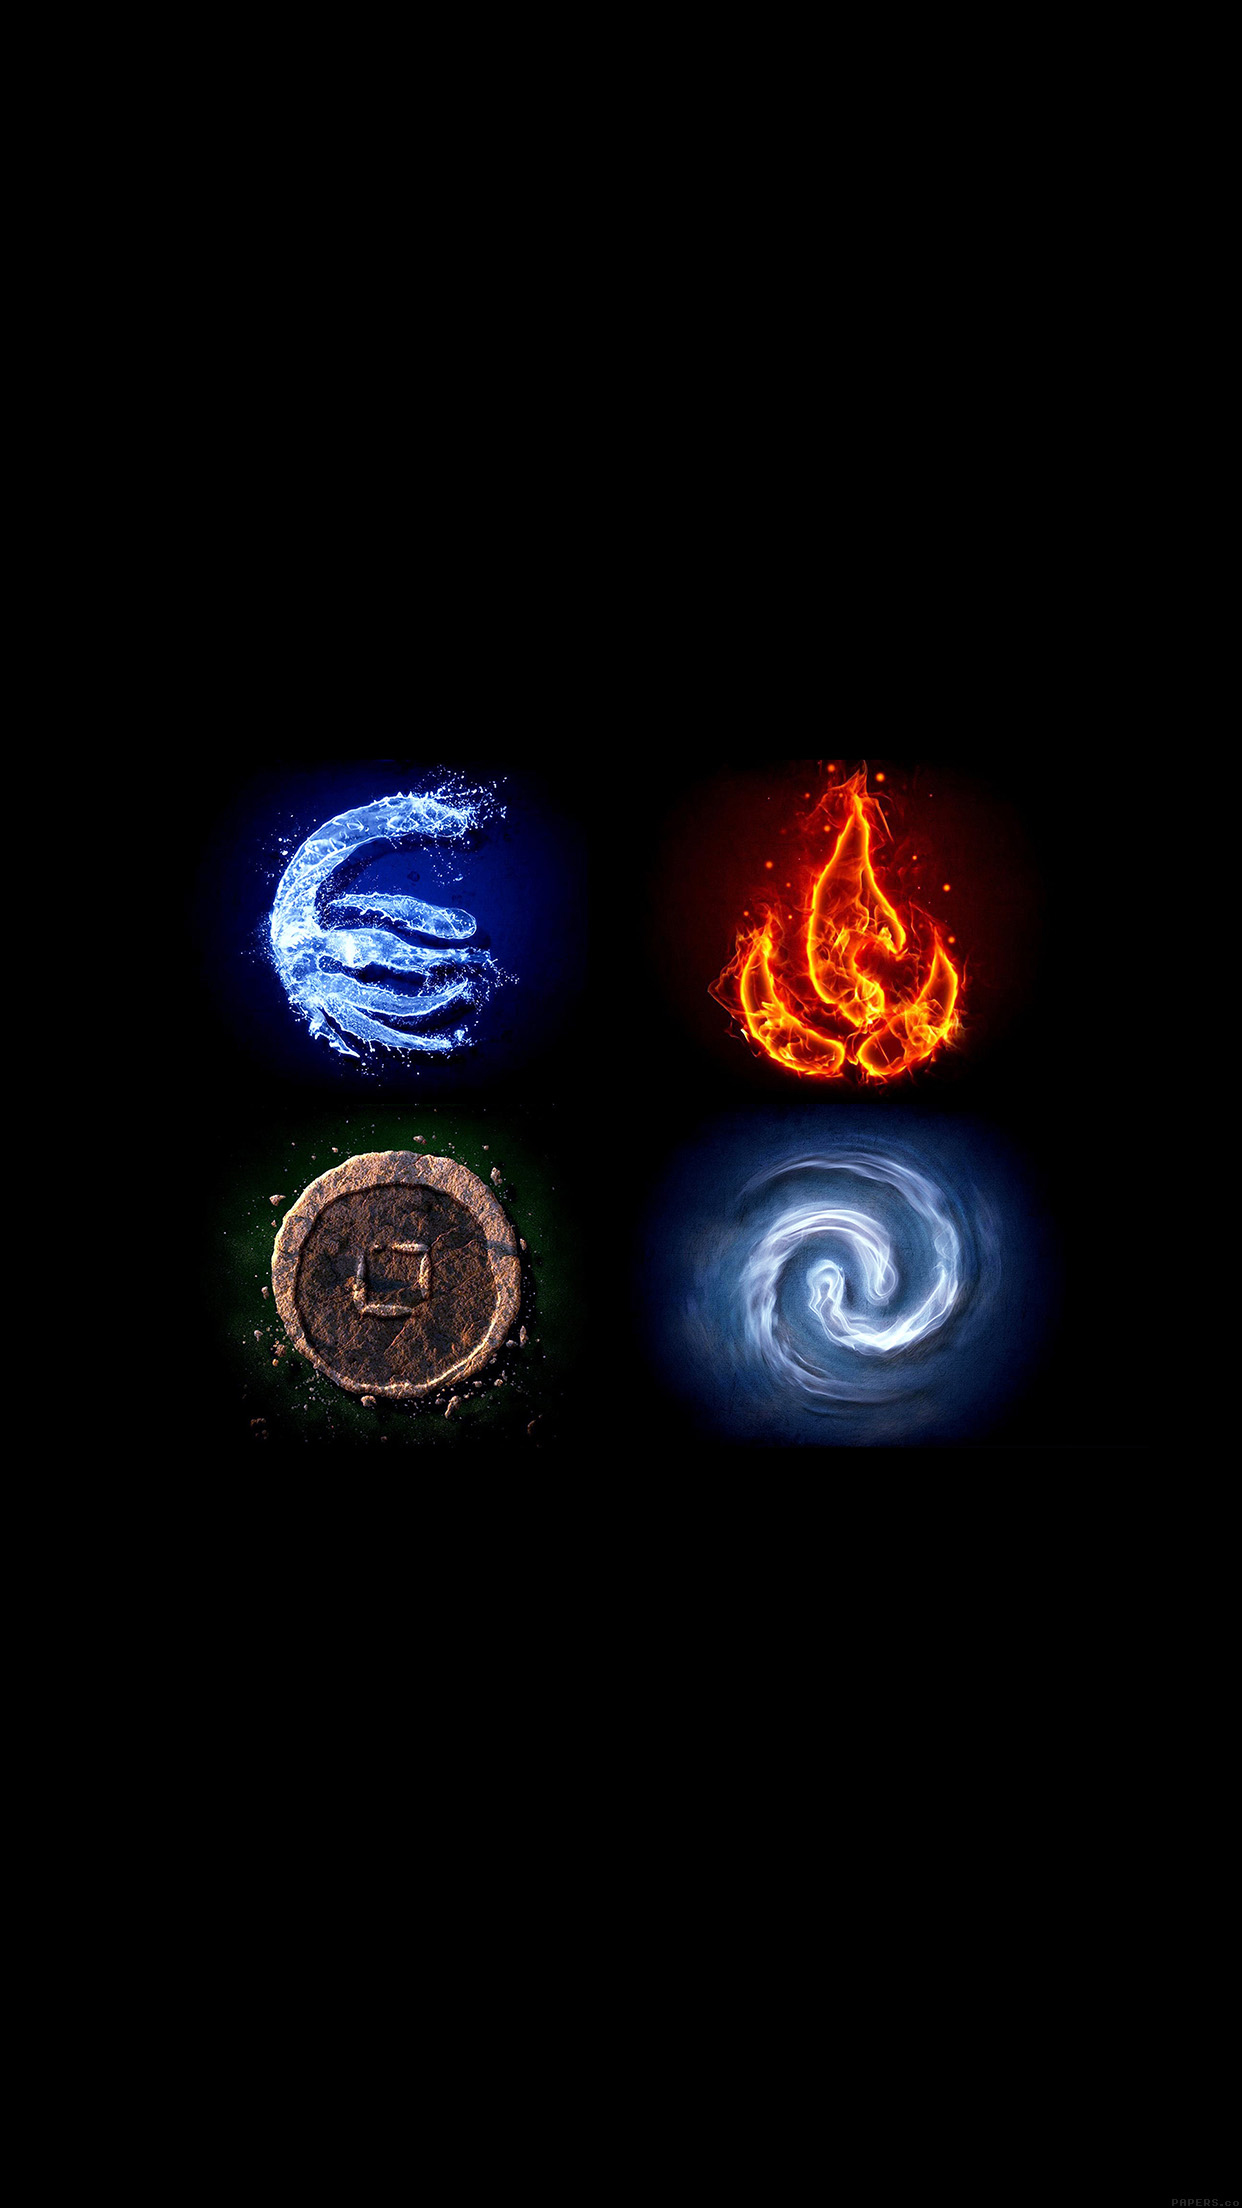 Avatar the last airbender the four elements 3Wallpapers iPhone Parallax Avatar the last airbender the four elements